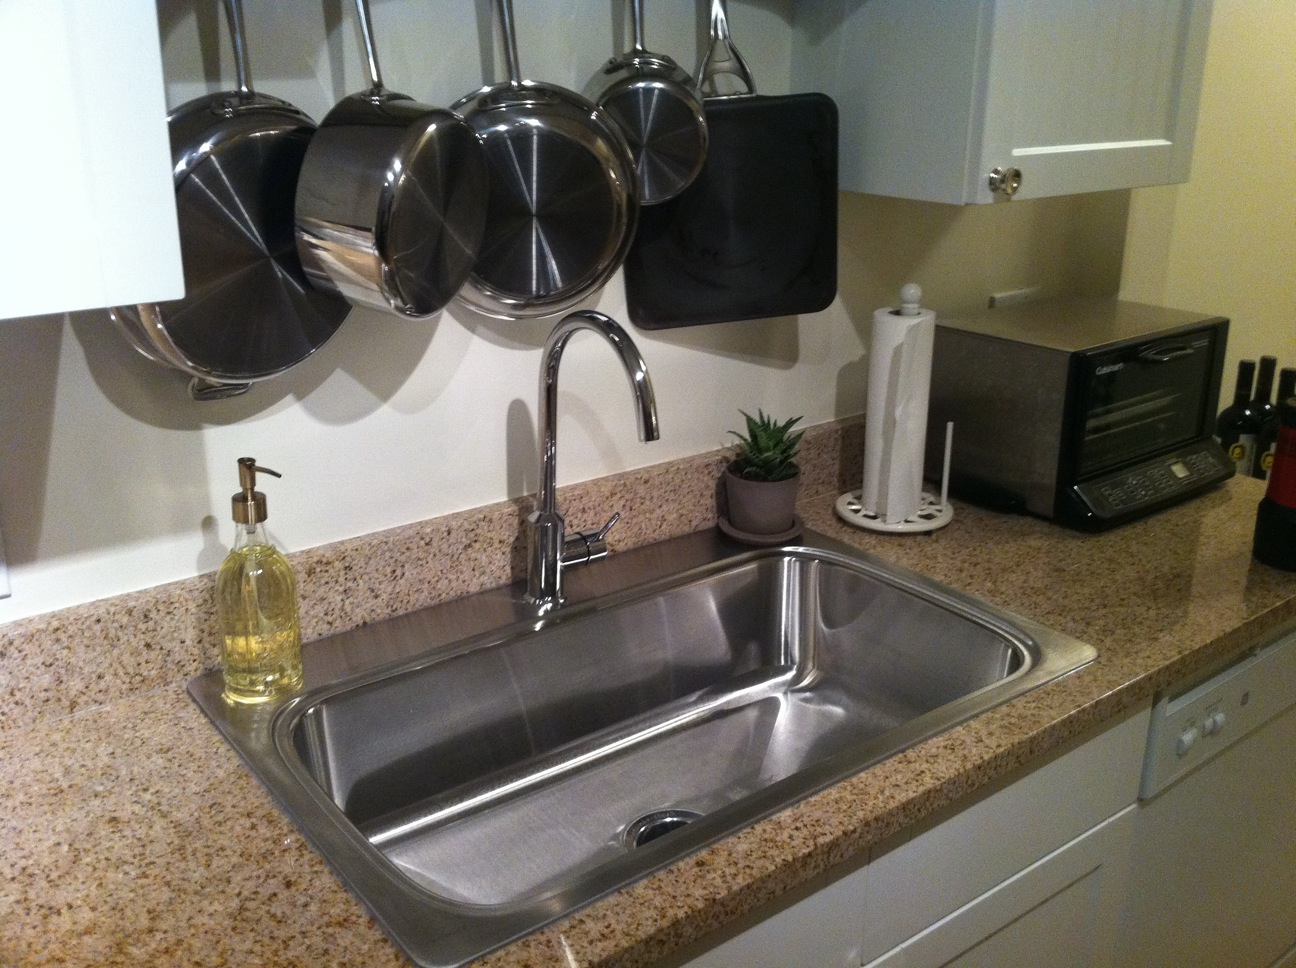 Menards Sinks | Bowl Bathroom Sinks | Vessel Bathroom Sinks